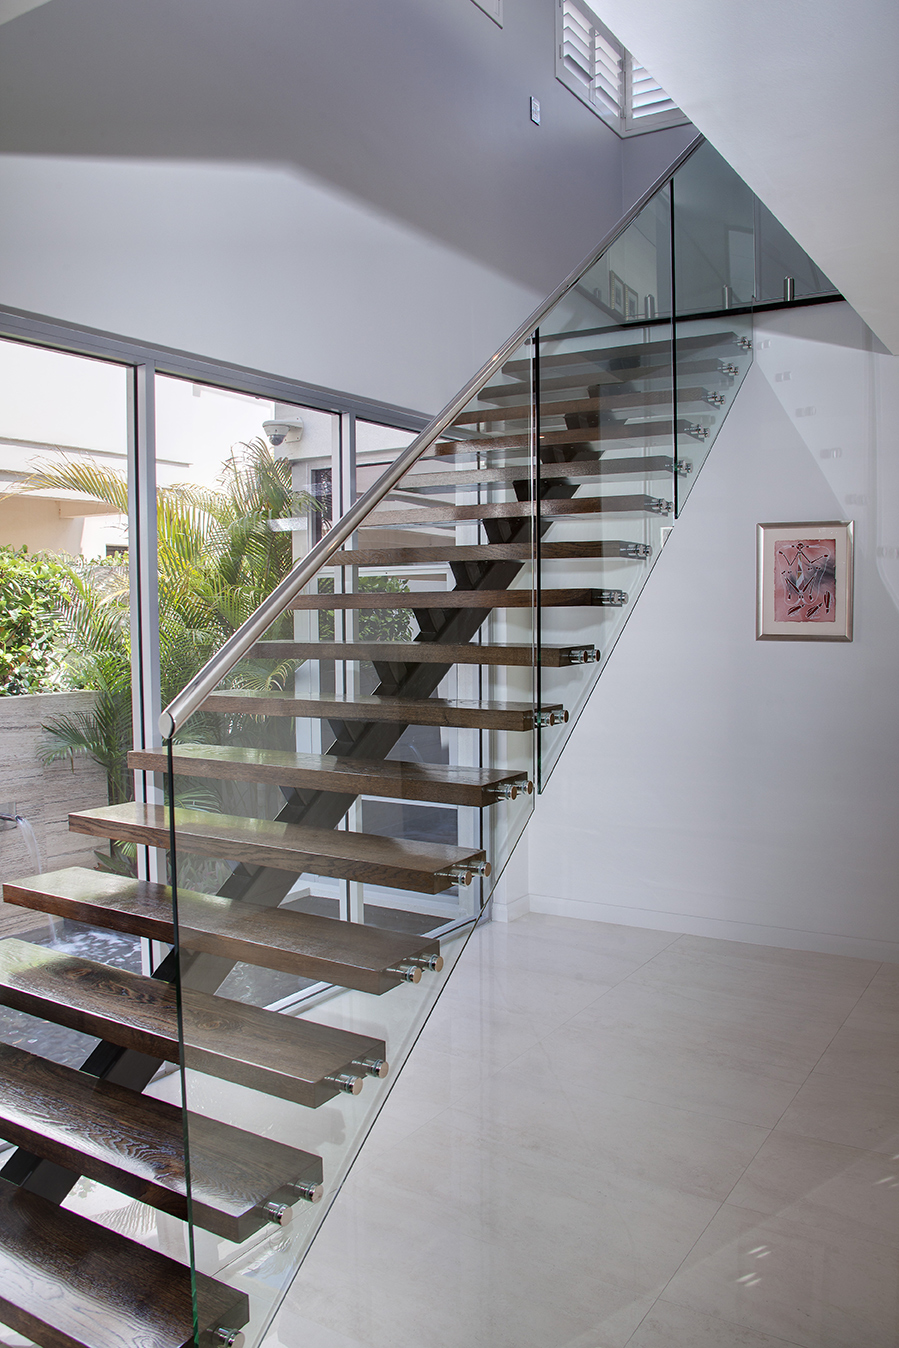 Stairs and Balustarde Railings   Stair Glass - Donegal Glass